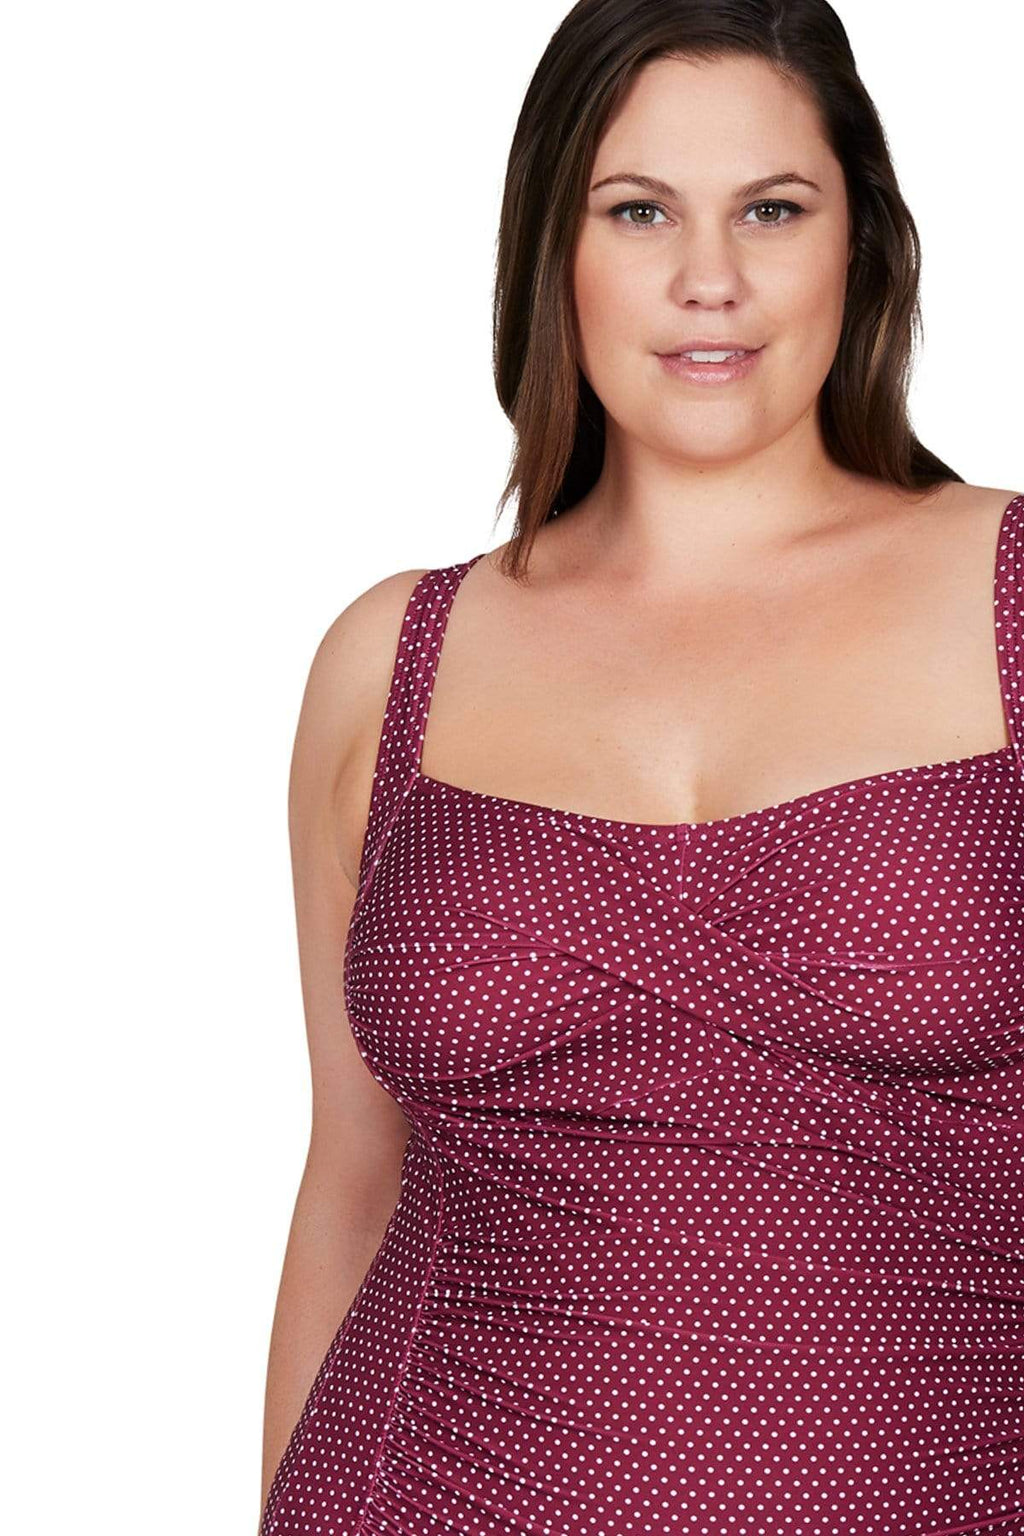 Artesands One Piece Syrah Polka Rococo Botticelli One Piece Plus Size Curvy